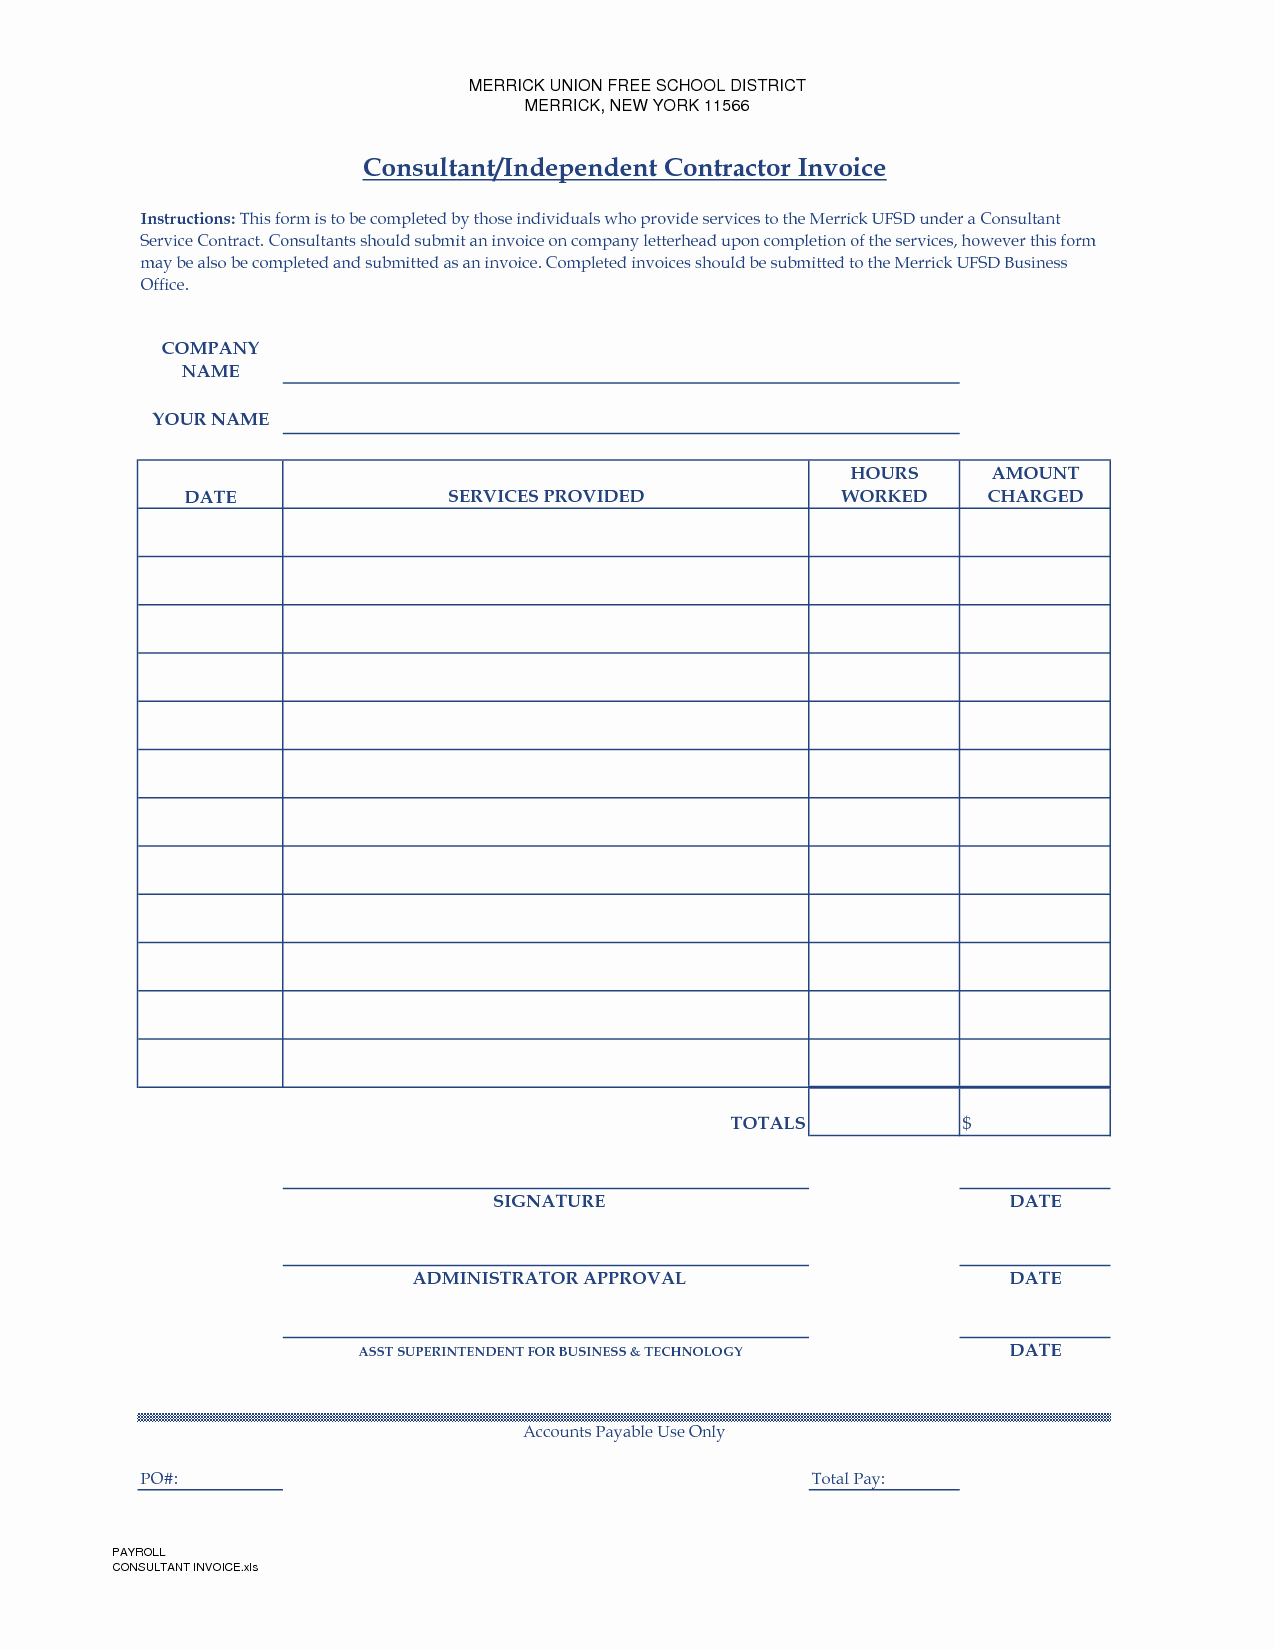 Independent Contractor Invoice Template Free Unique Independent Contractor Invoice Template